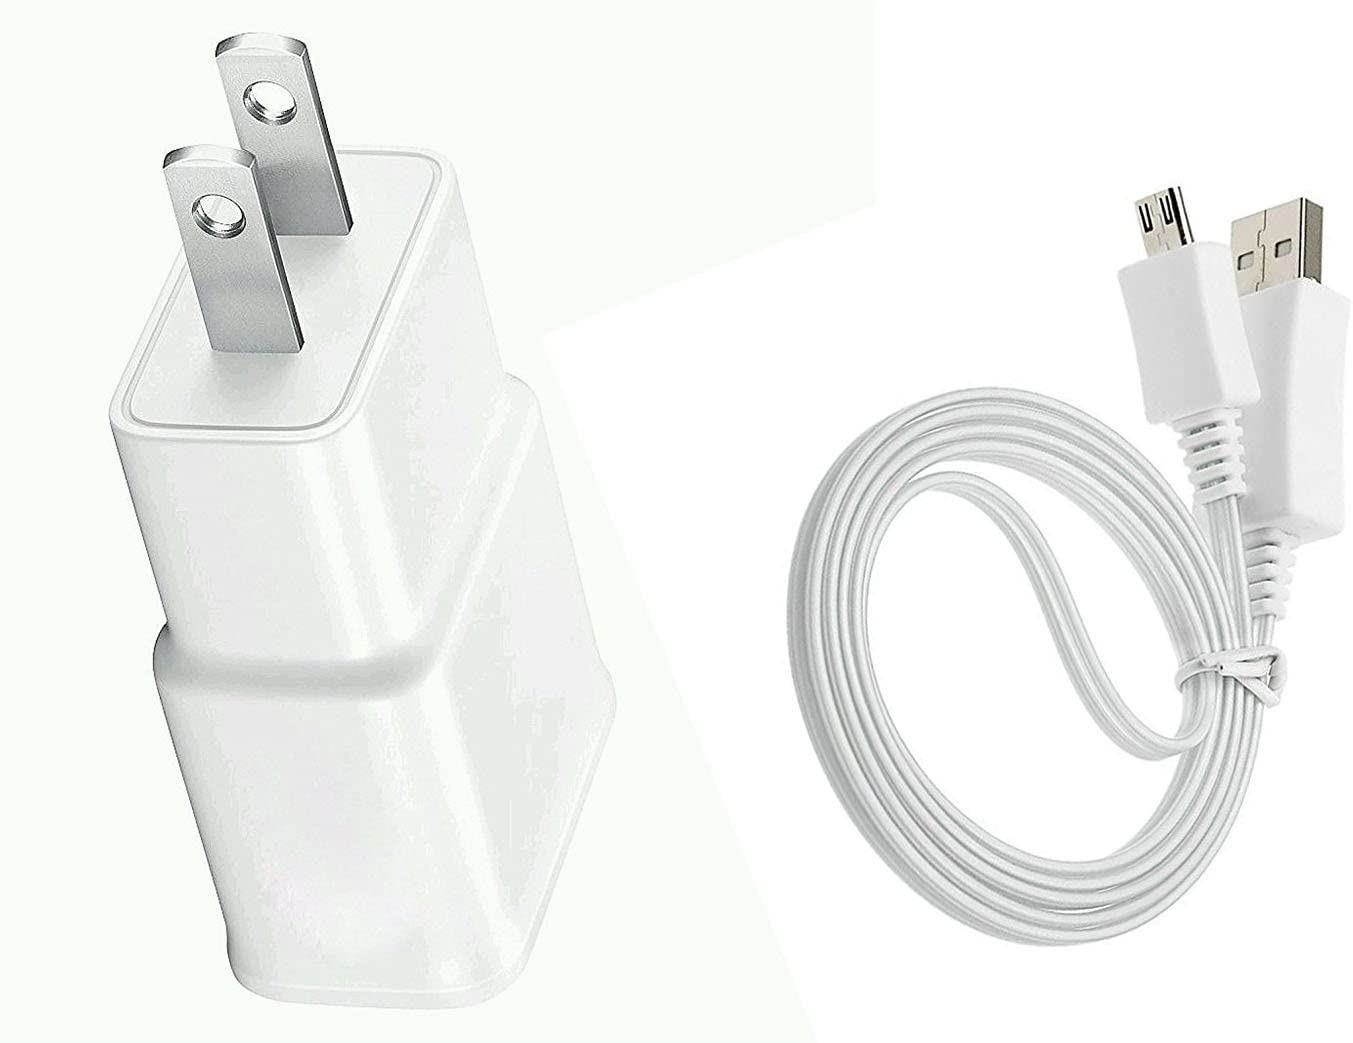 Power USB New color Adapter Charger Cable for Lite 3 Tab Samsung trend rank Galaxy SM